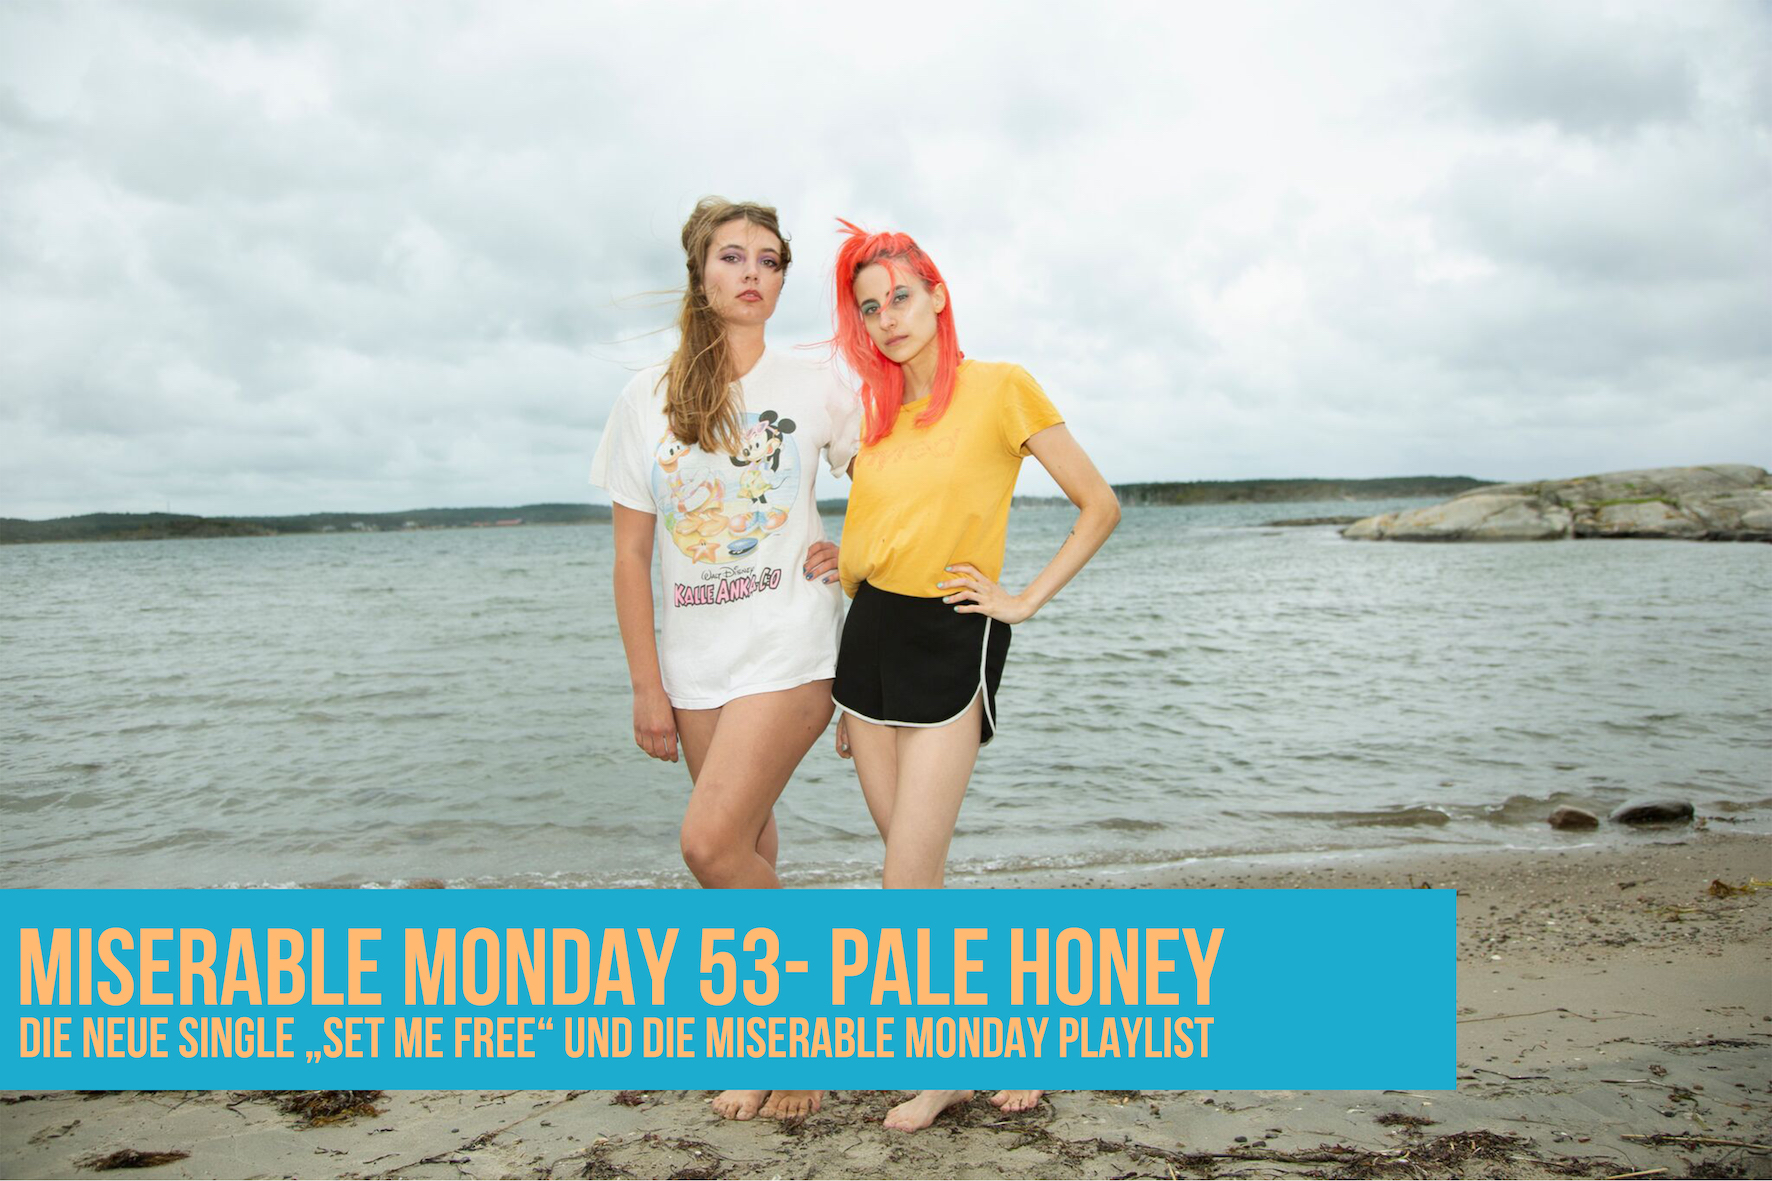 Pale Honey, Credit: Jasmin Storch